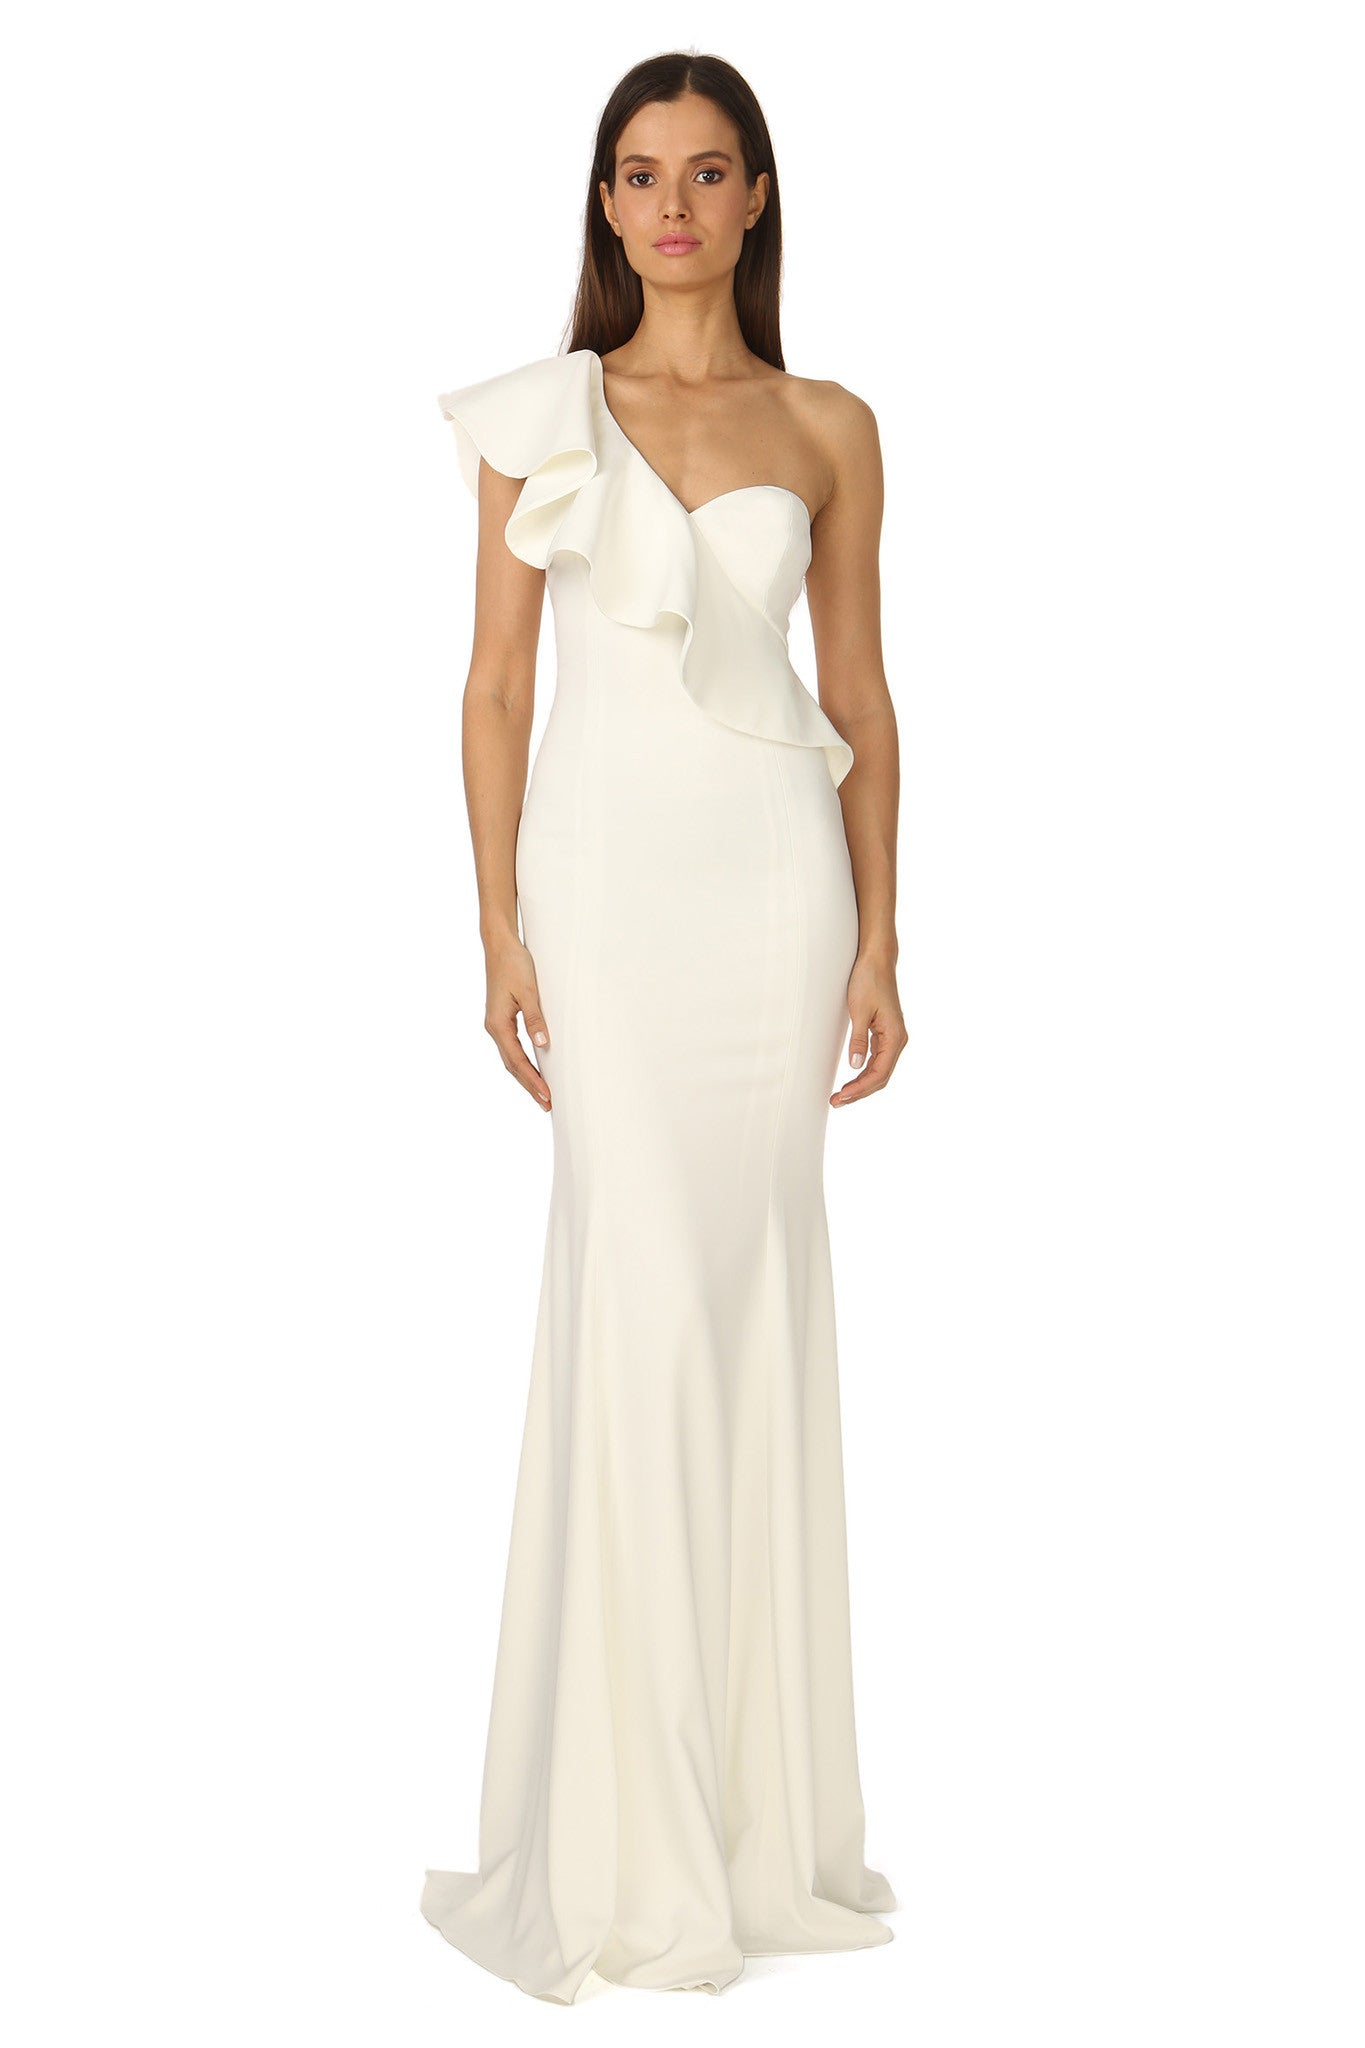 Jay Godfrey Ivory One-Shoulder Ruffle Gown - Front View